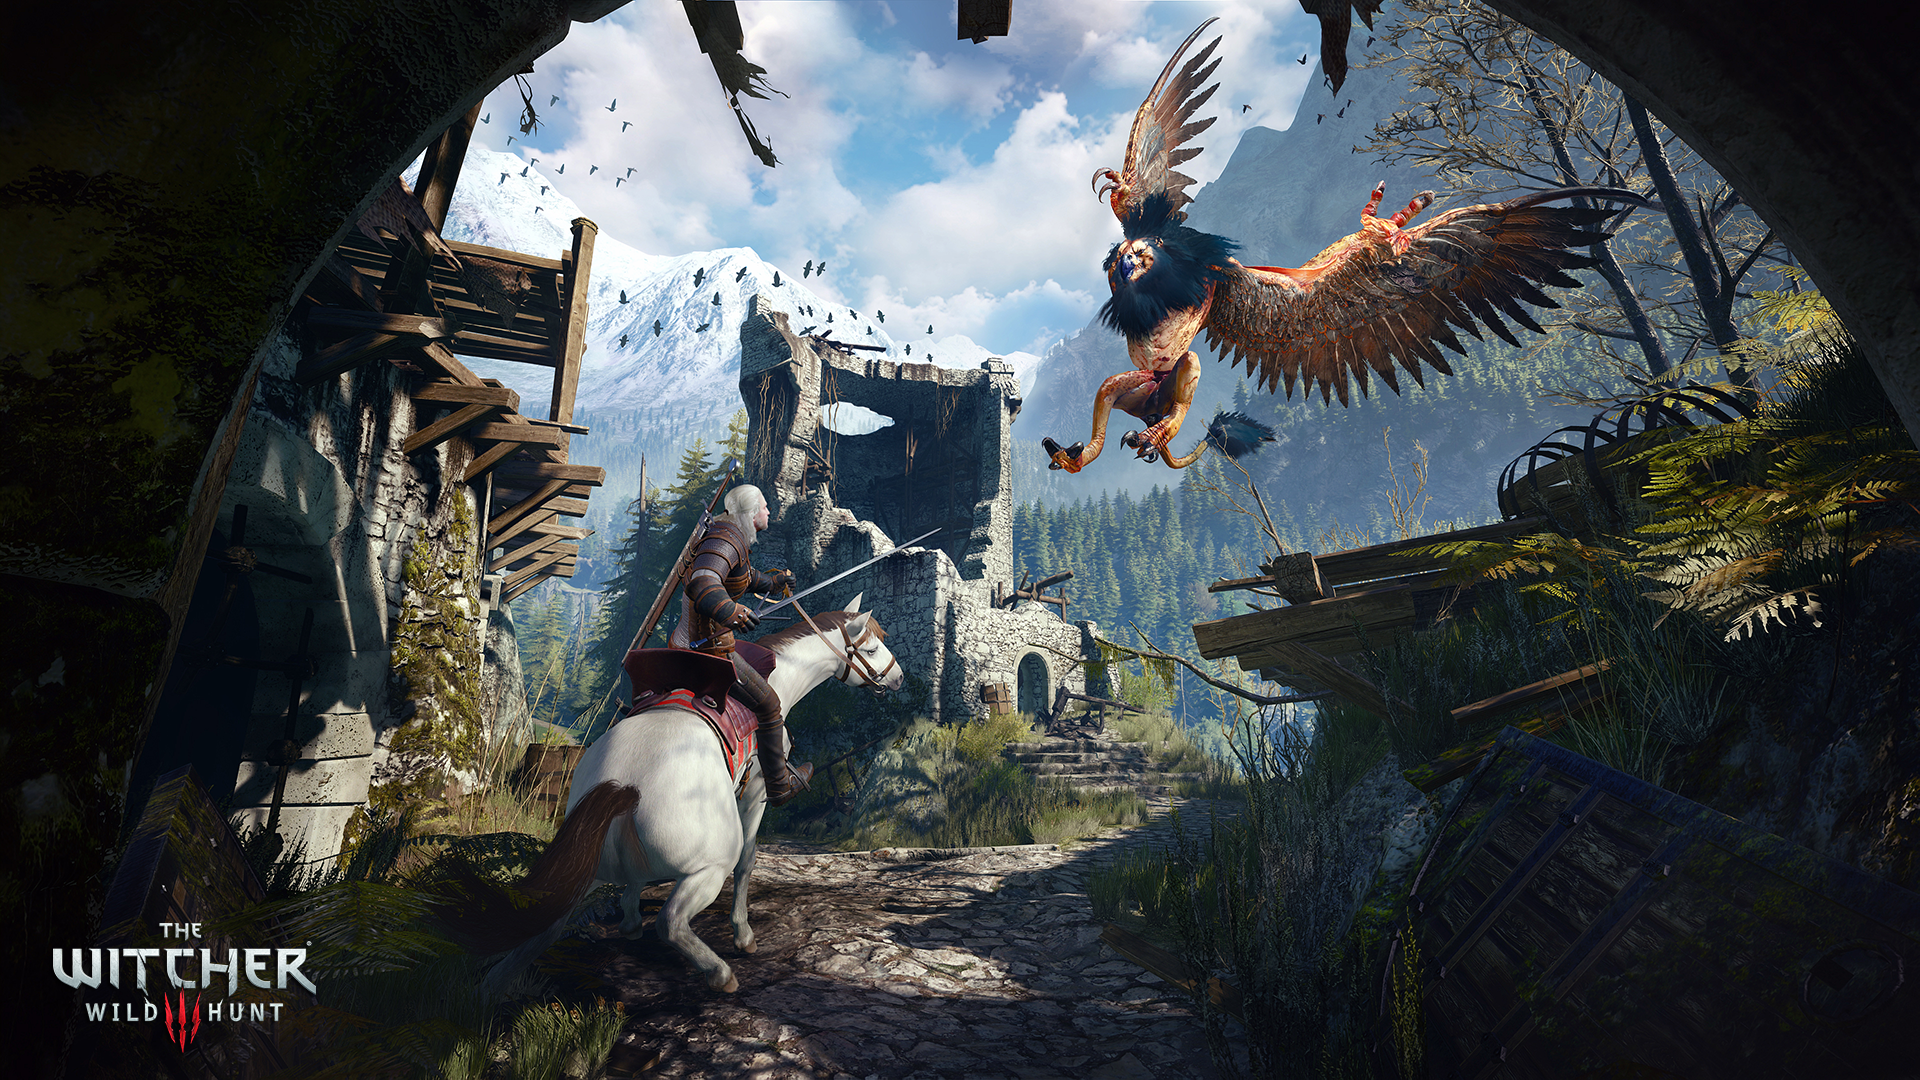 The Witcher 3 S Recommended Specs Are Only For Mid High Settings